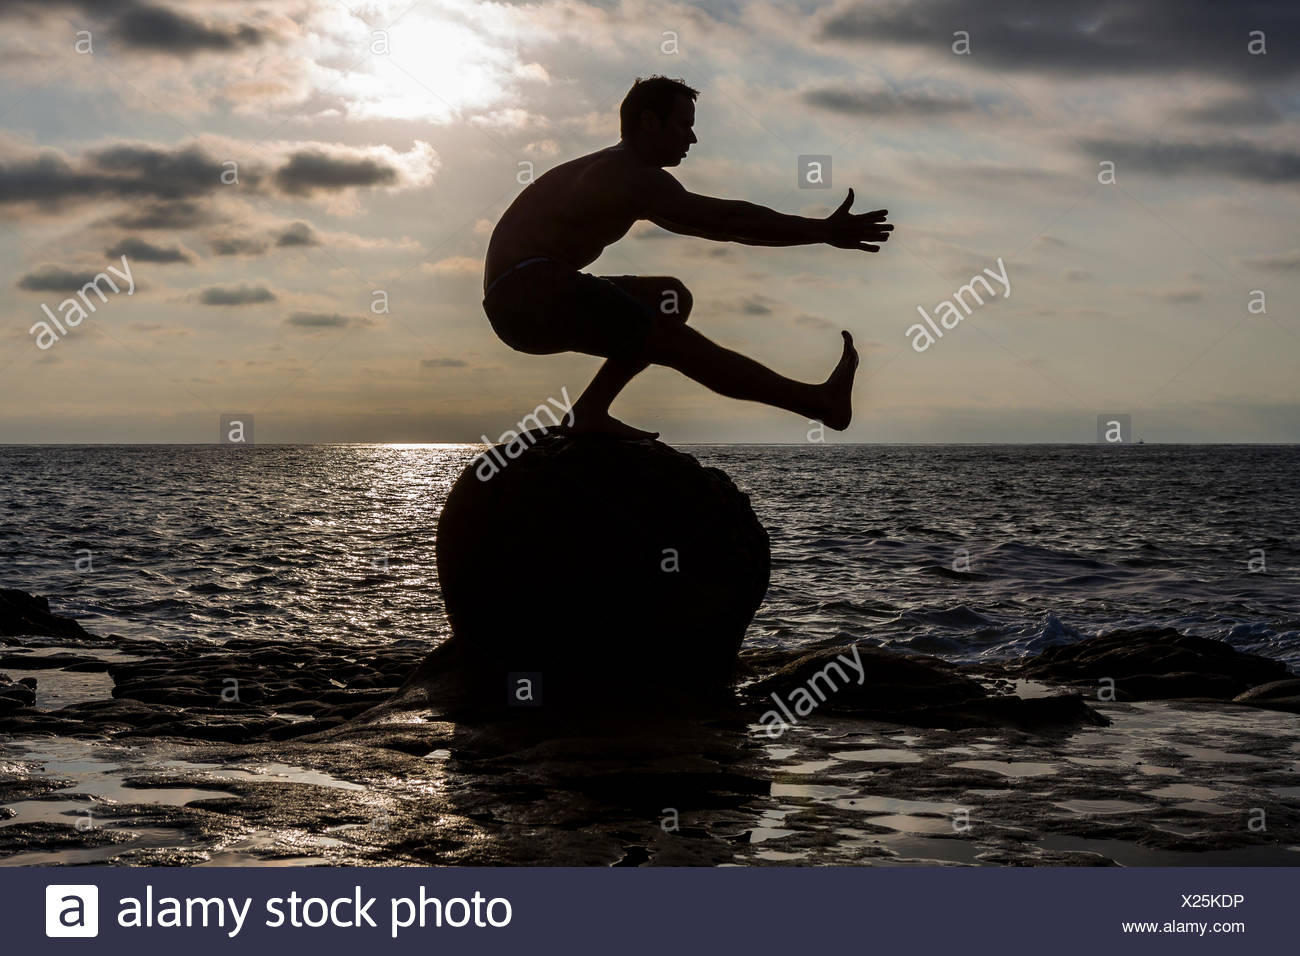 The silhouette of a shirtless male CrossFit athlete as he performs a pistol or one-legged squat on a rock in the Pacific Ocean in San Diego, California at sunset. - Stock Image